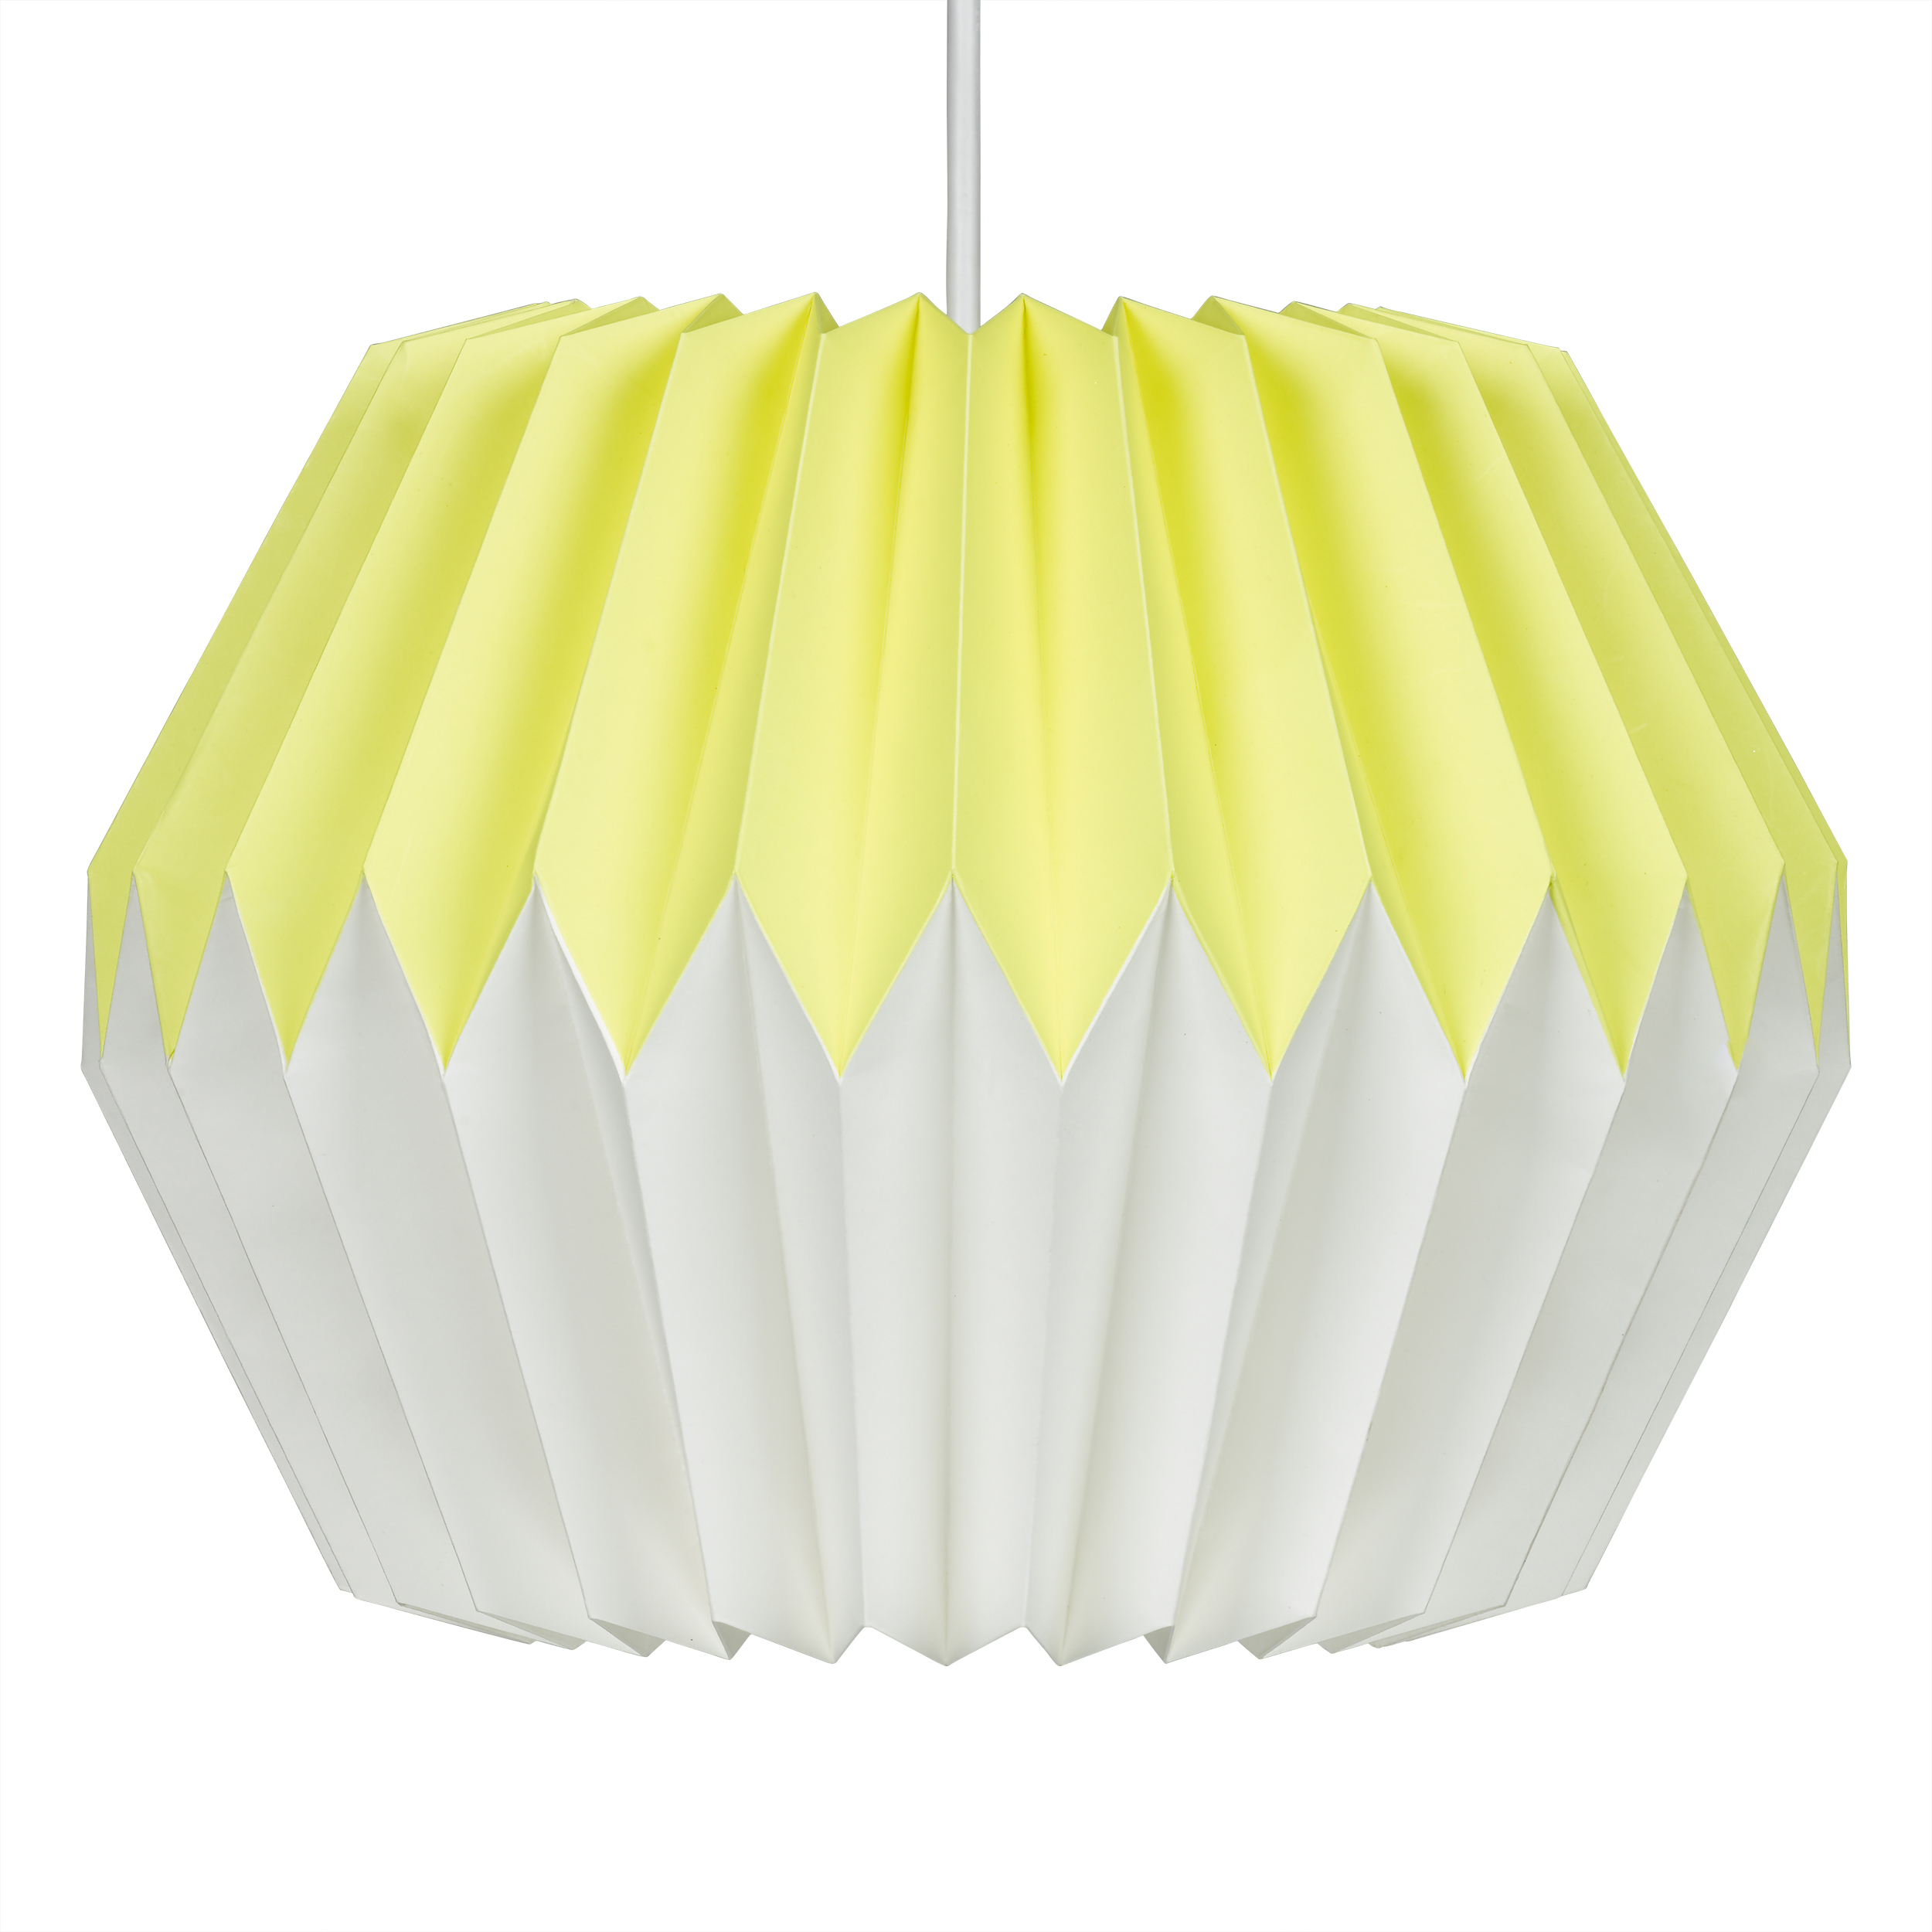 Lemon yellow paper lampshade wild and wolf website lemon yellow paper lampshade mozeypictures Image collections